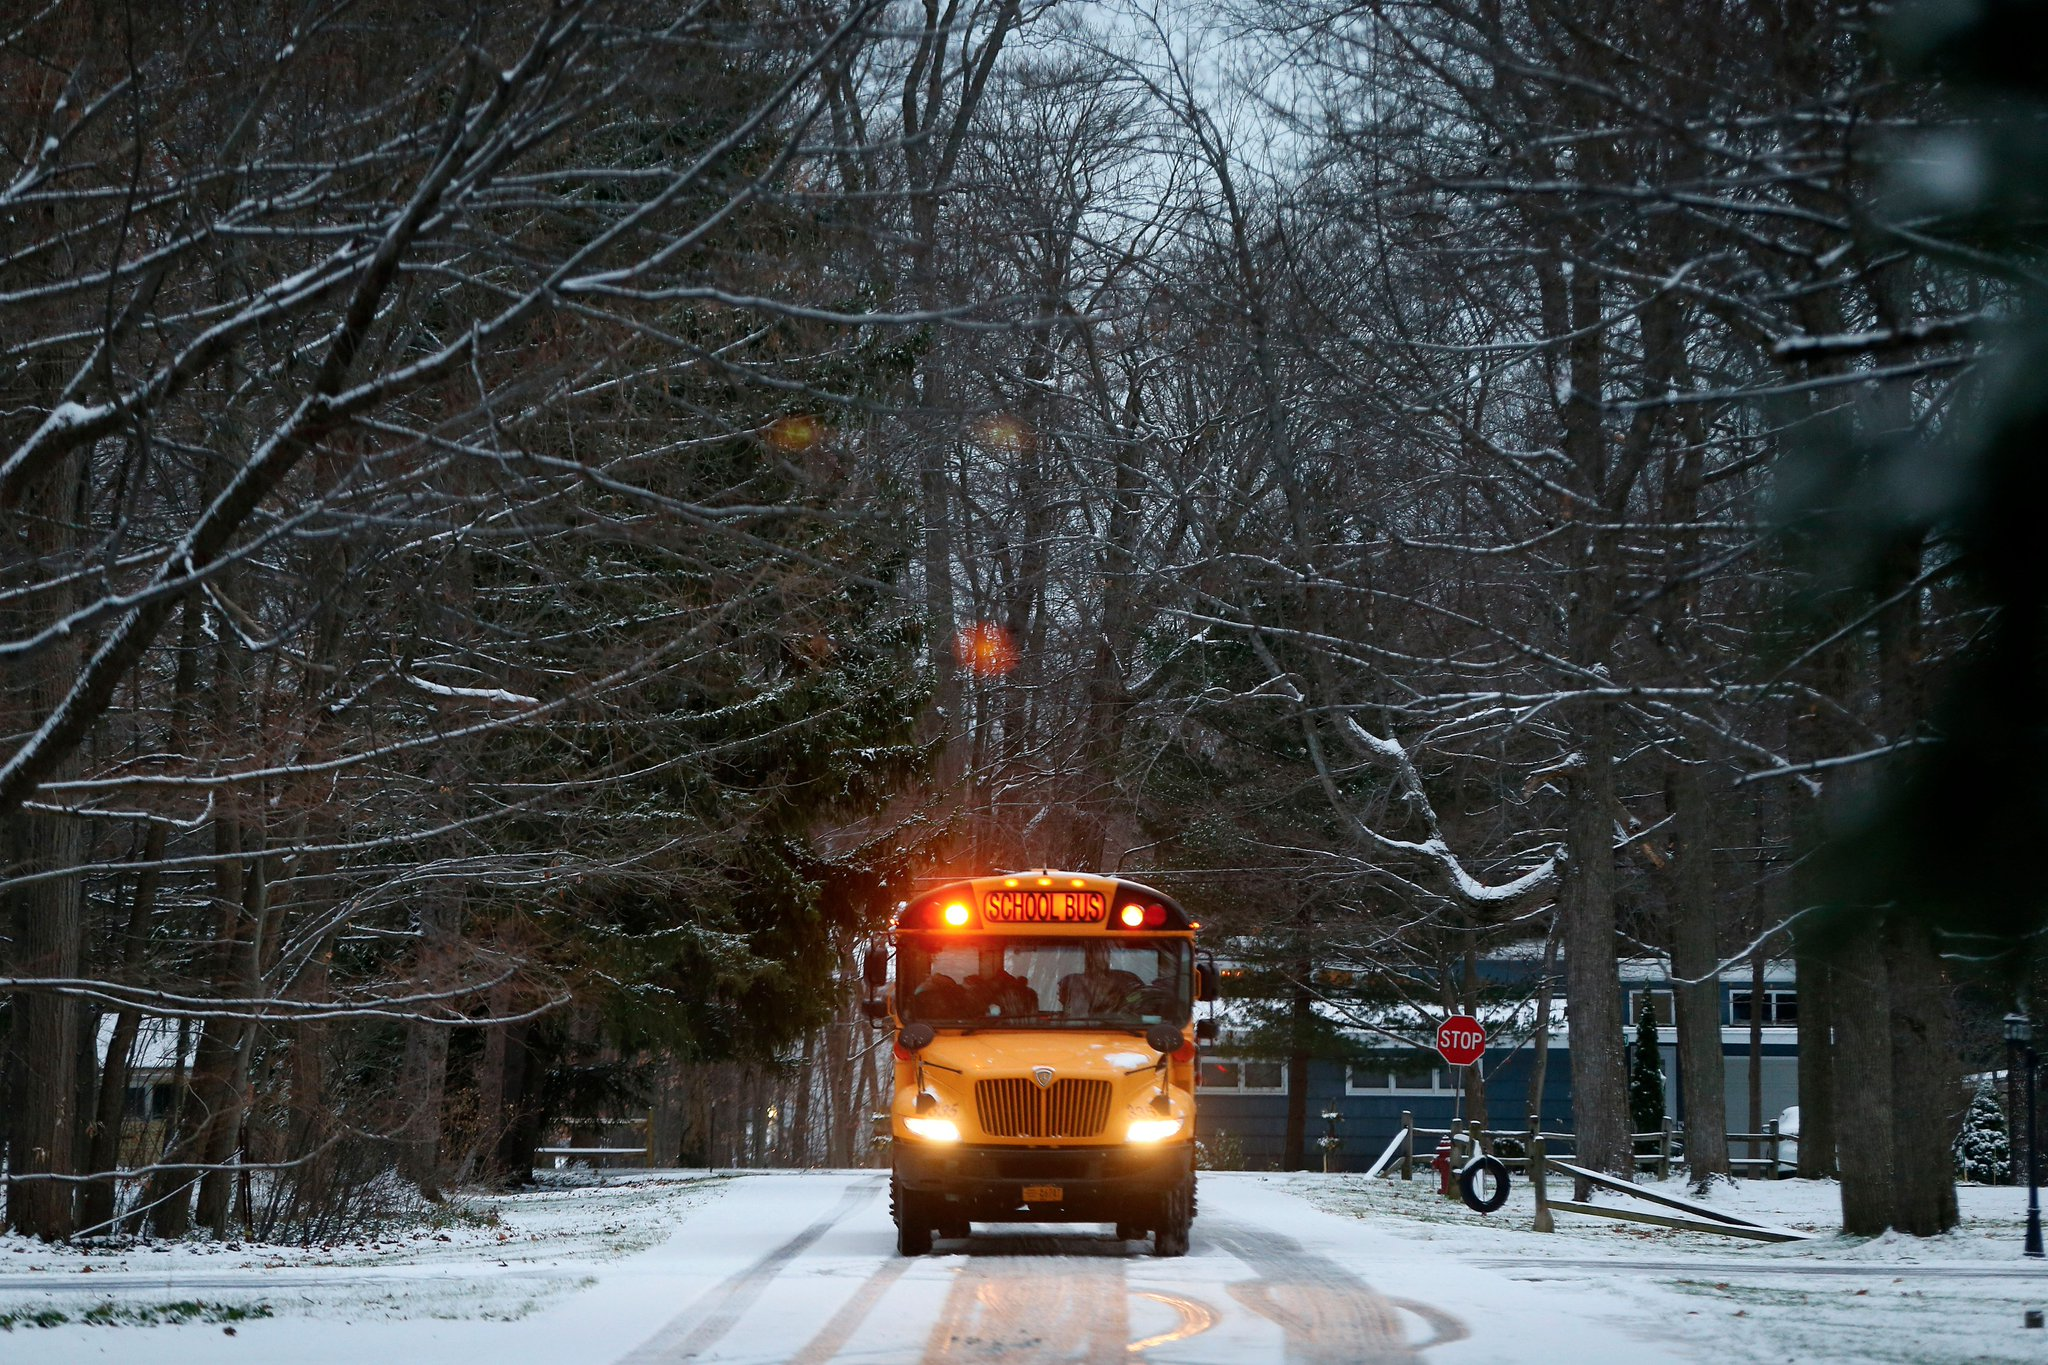 Roads are covered in snow as a school bus makes a stop in Orchard Park. (Mark Mulville/Buffalo News)